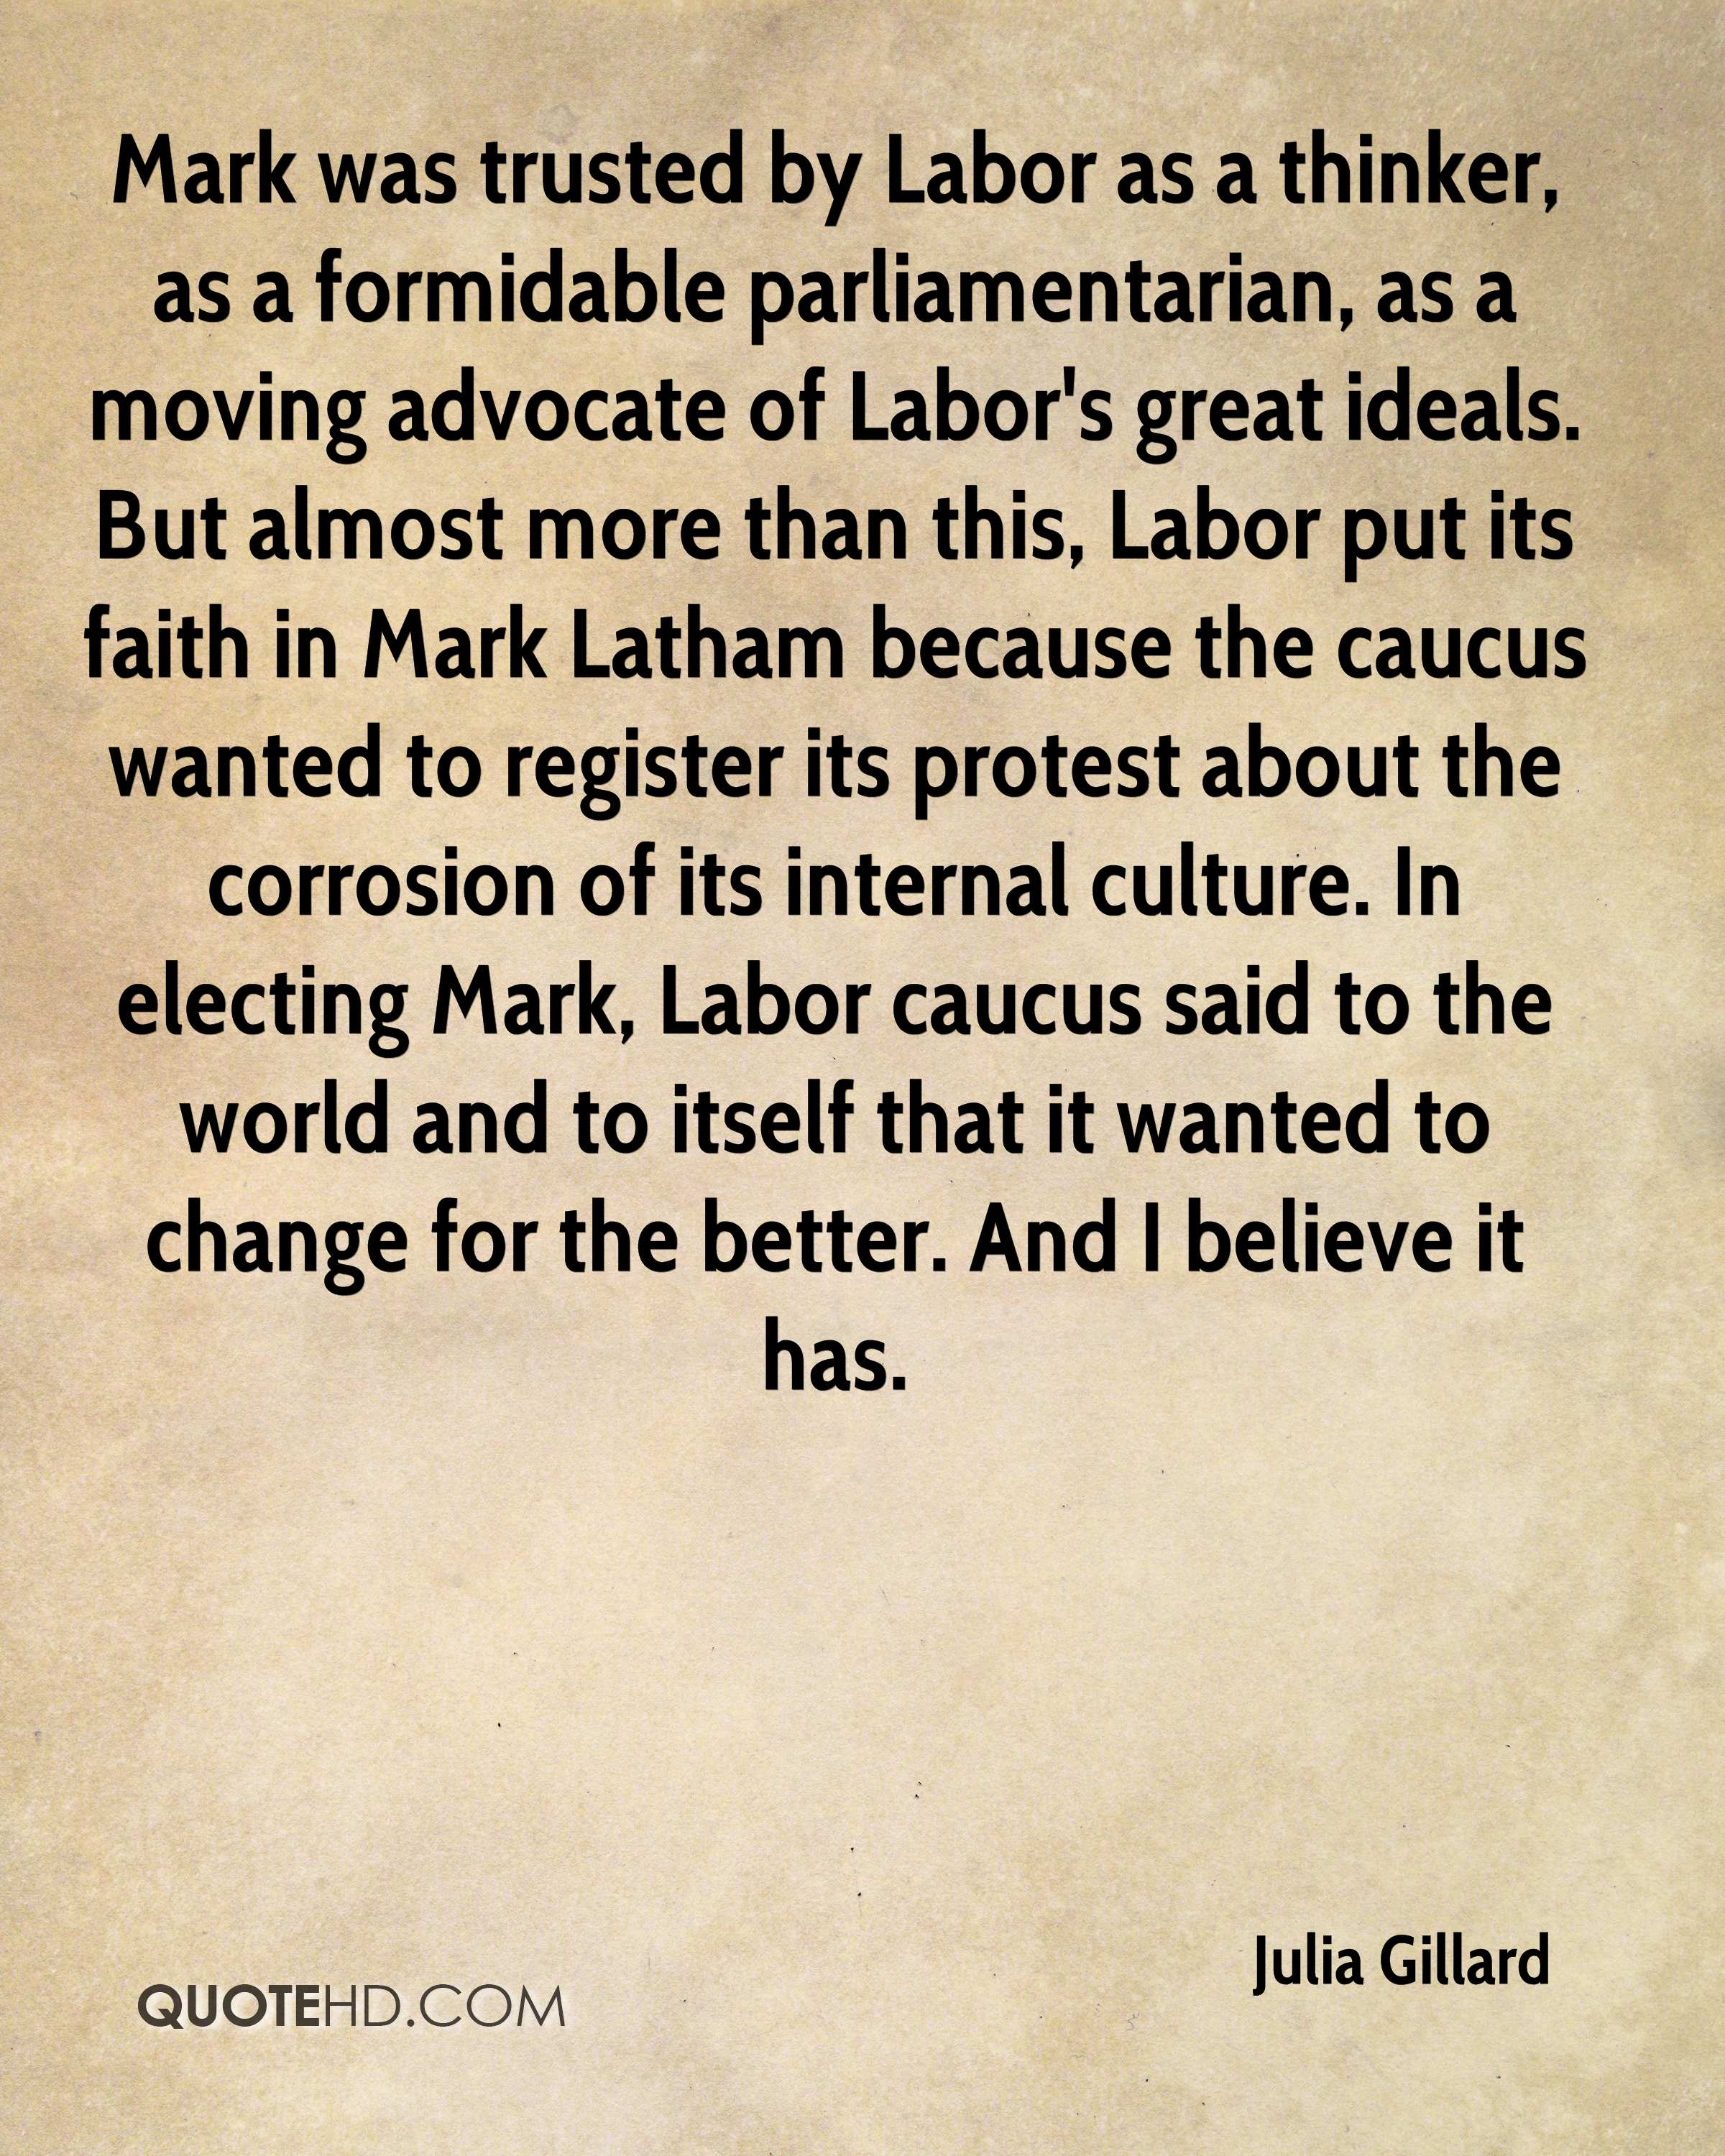 Mark was trusted by Labor as a thinker, as a formidable parliamentarian, as a moving advocate of Labor's great ideals. But almost more than this, Labor put its faith in Mark Latham because the caucus wanted to register its protest about the corrosion of its internal culture. In electing Mark, Labor caucus said to the world and to itself that it wanted to change for the better. And I believe it has.